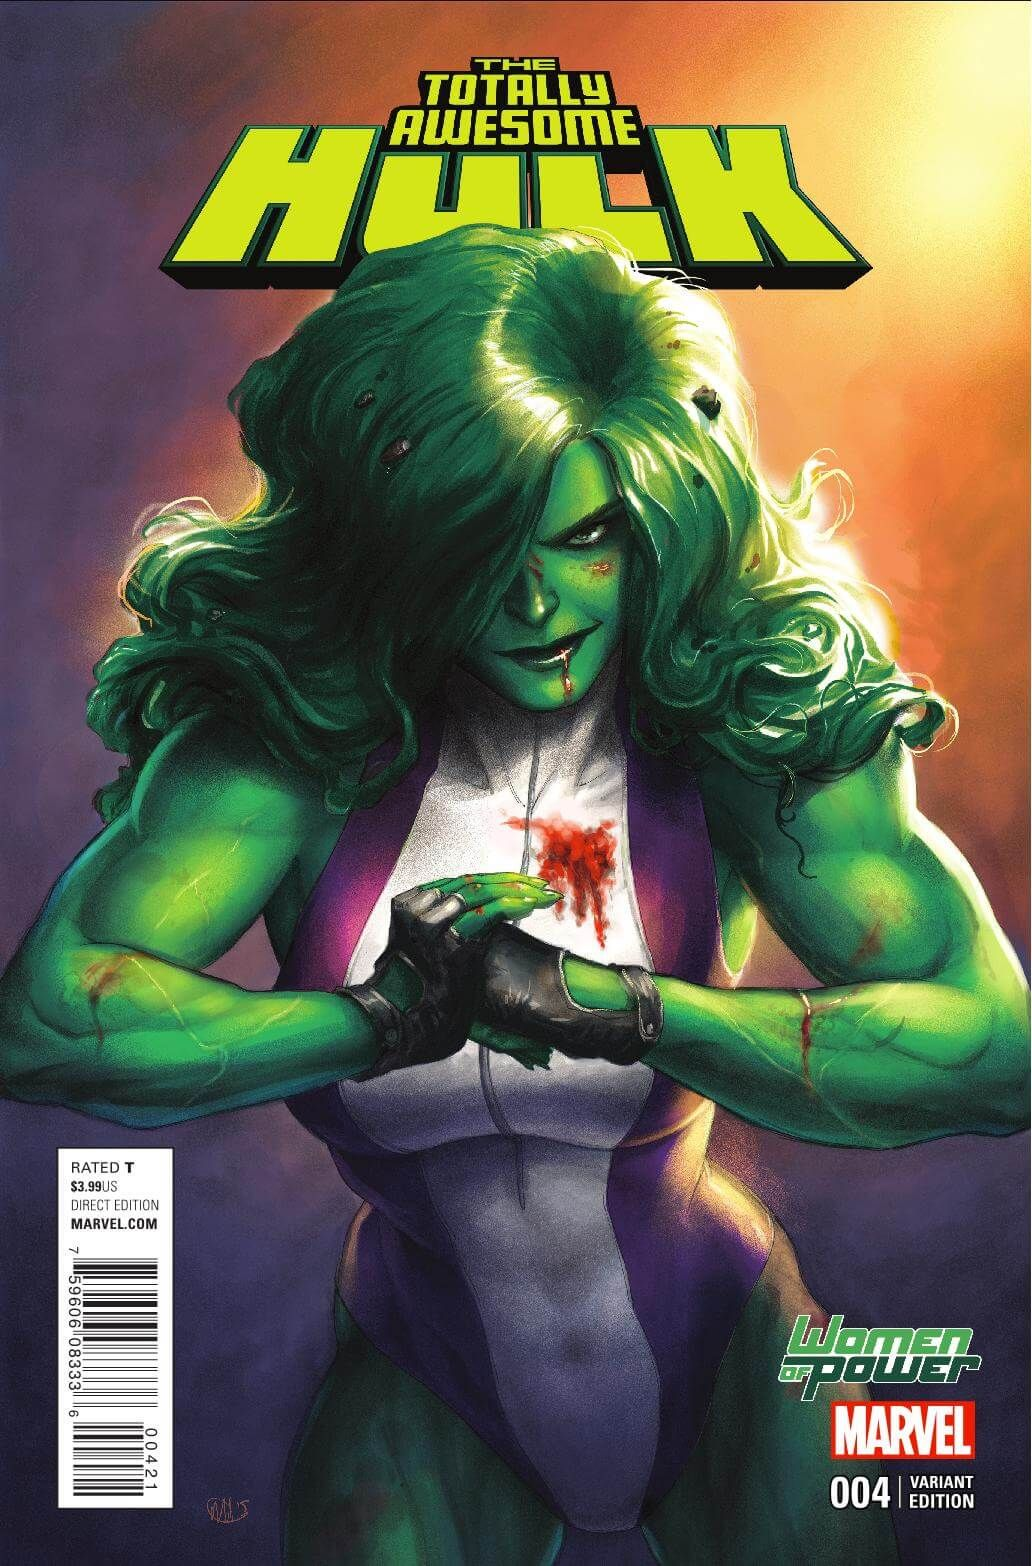 Totally Awesome Hulk #4, Story: Greg Pak Art: Frank Cho Covers: Frank Cho & Meghan Hetrick Publisher: Marvel Publication Date: March 23rd, 2016 Price: $3.99